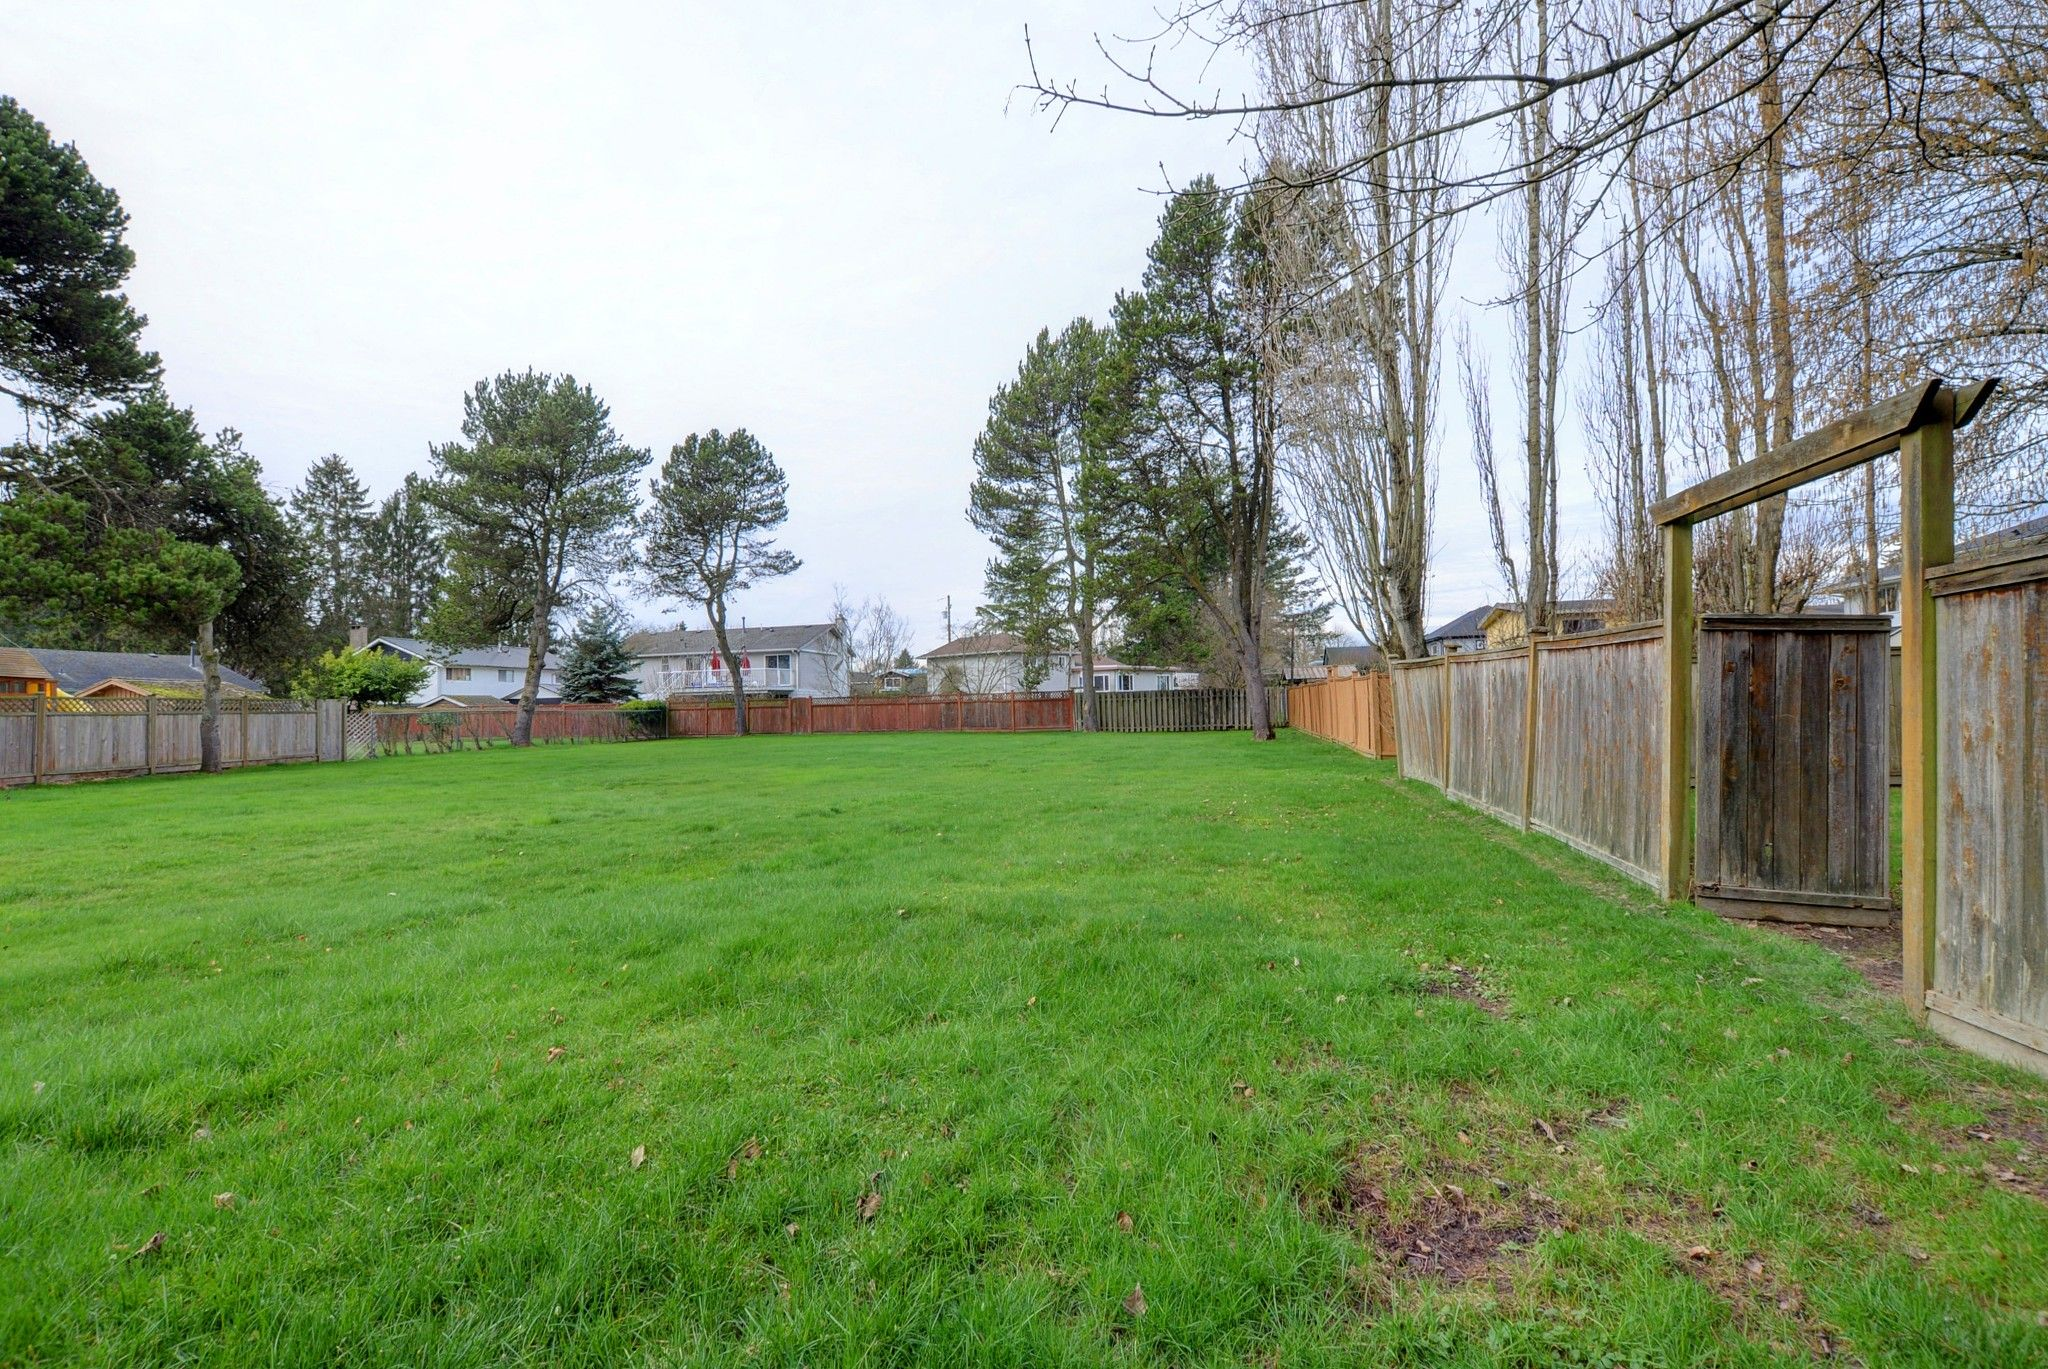 Photo 23: Photos: 5166 44 Avenue in Delta: Ladner Elementary House for sale (Ladner)  : MLS®# R2239309